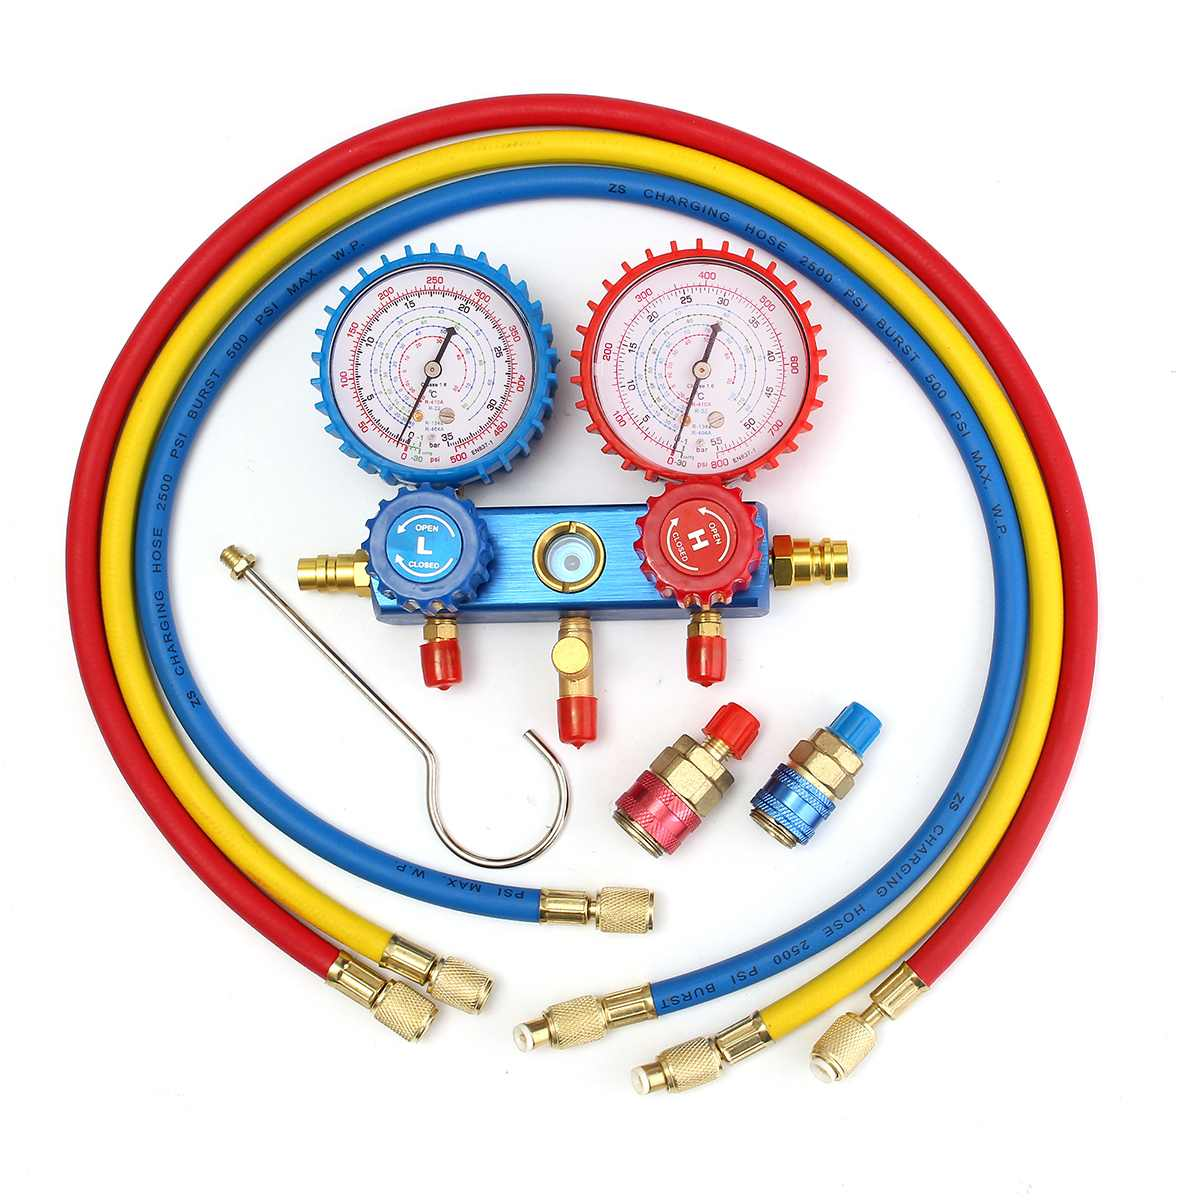 Auto Manifold Gauge Set A/C R134A Refrigerant Charging Hose with 2 Quick Coupler for R134A Air-conditioning RefrigerationAuto Manifold Gauge Set A/C R134A Refrigerant Charging Hose with 2 Quick Coupler for R134A Air-conditioning Refrigeration